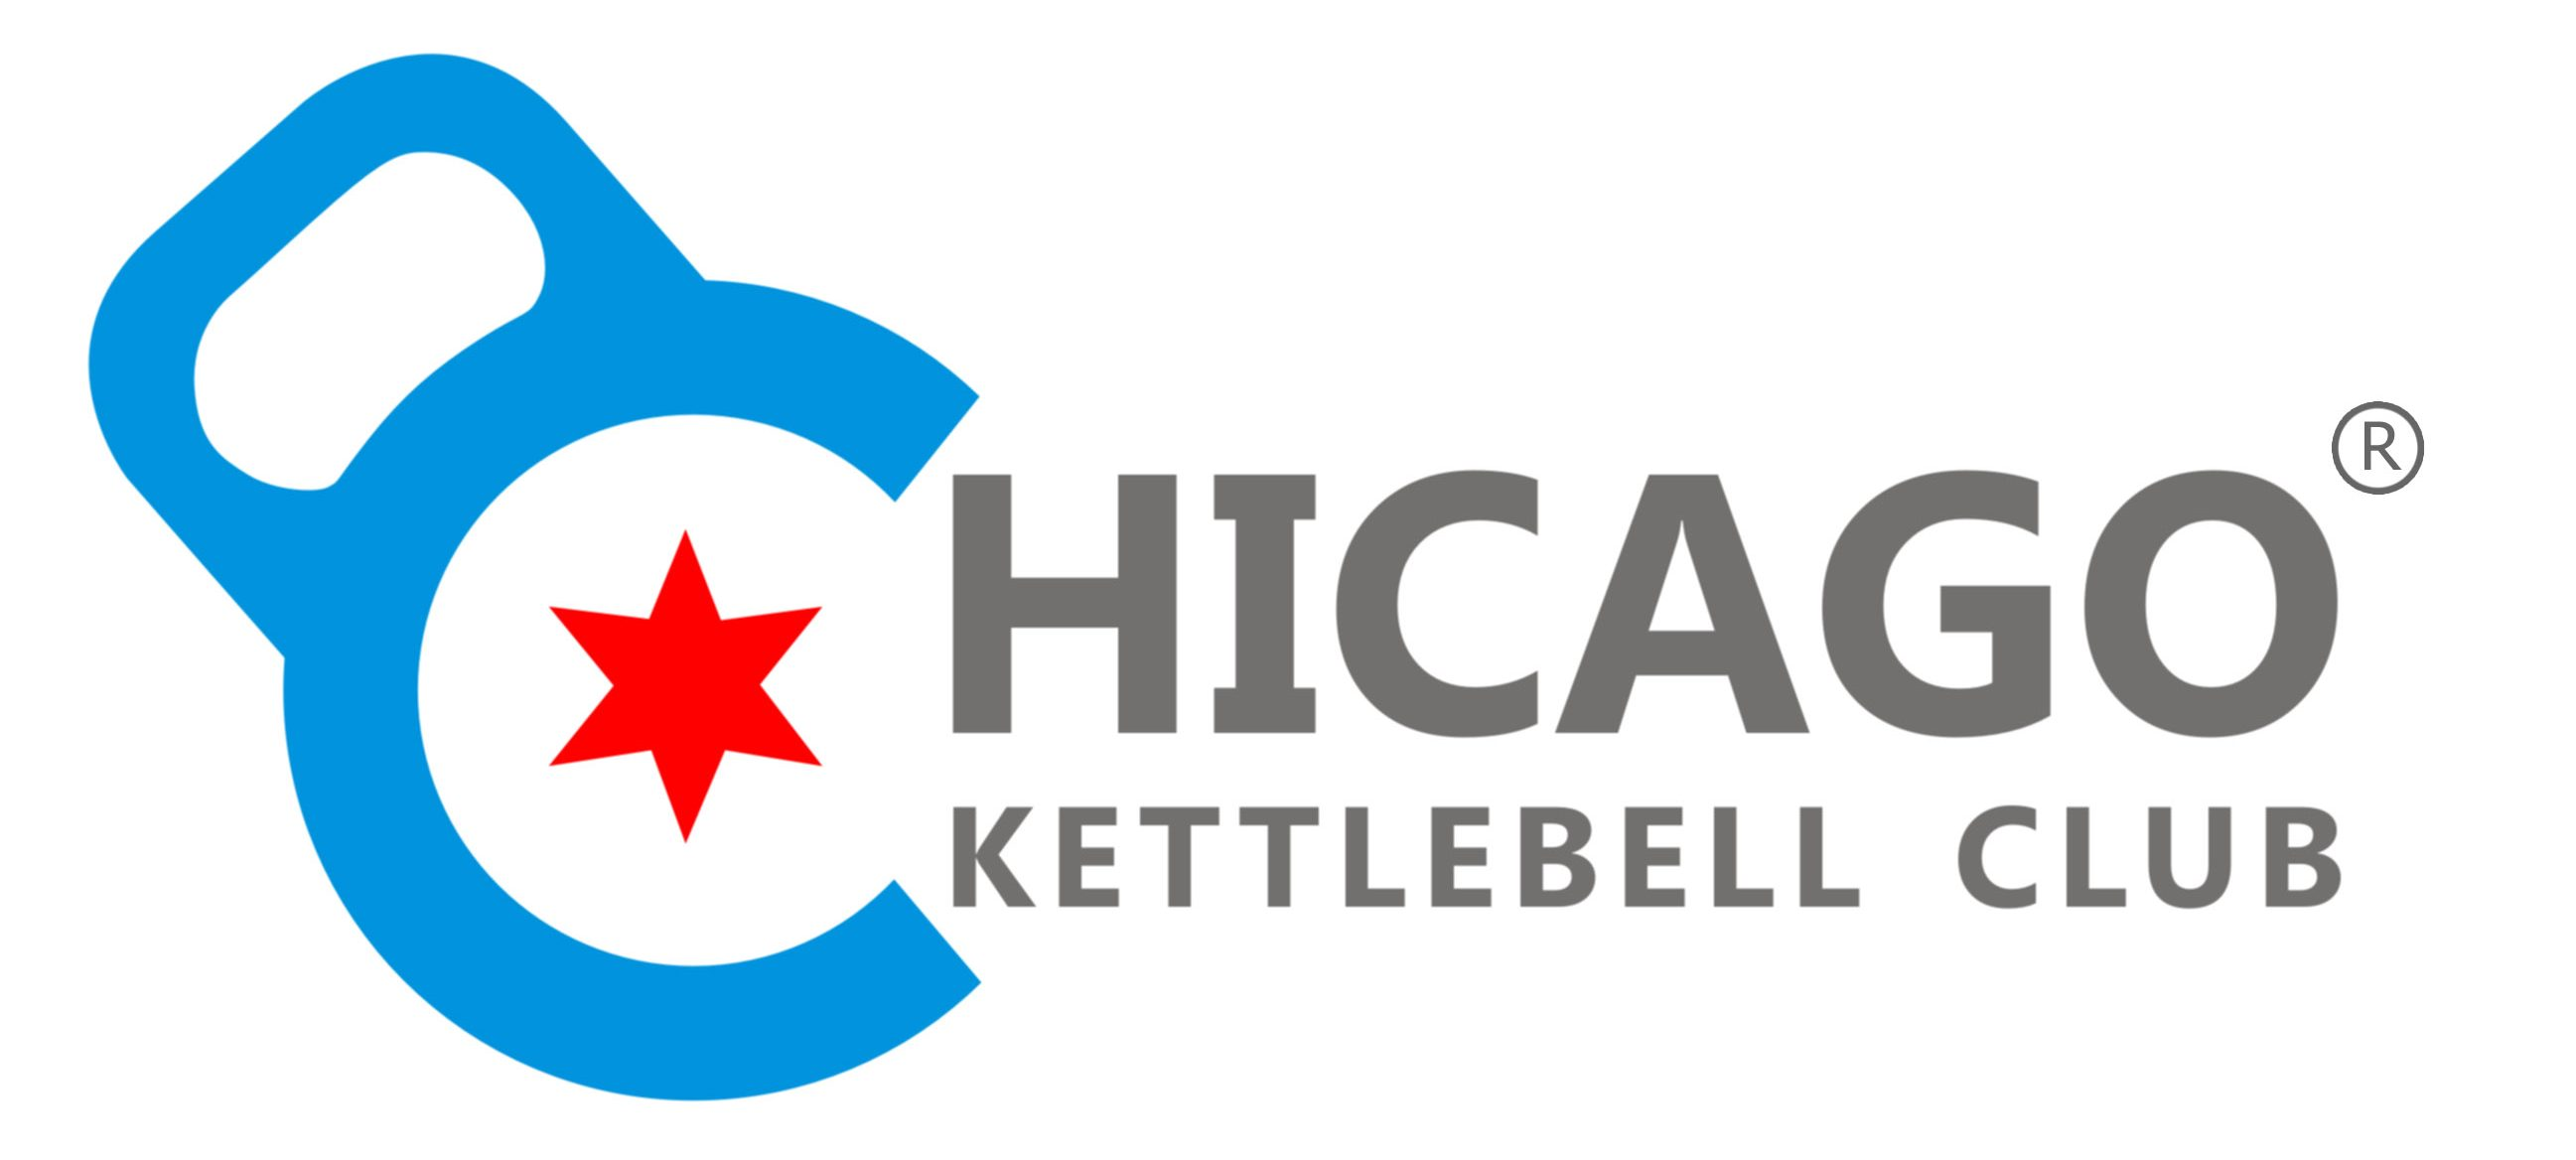 Chicago Kettlebell Club